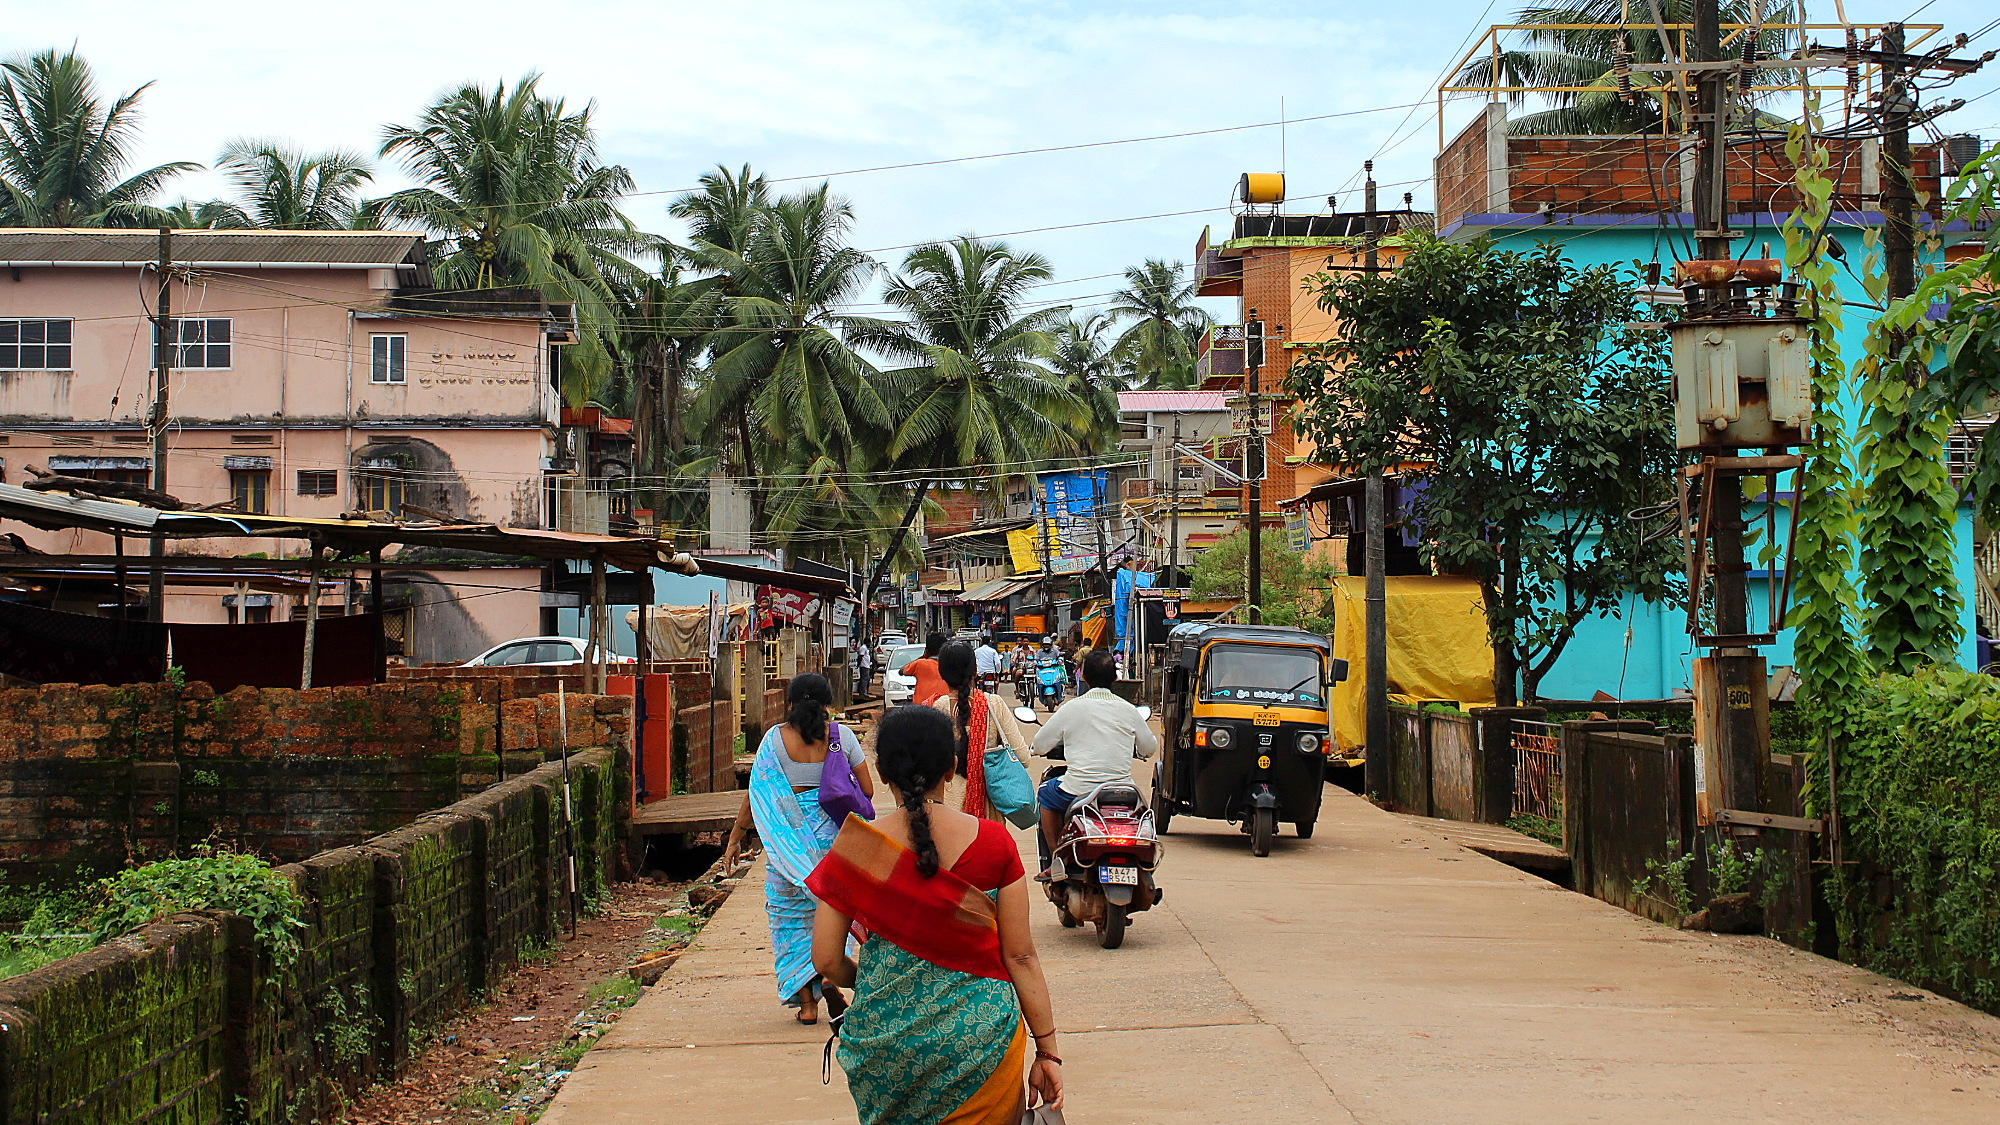 Locals walking in the town of Gokarna.